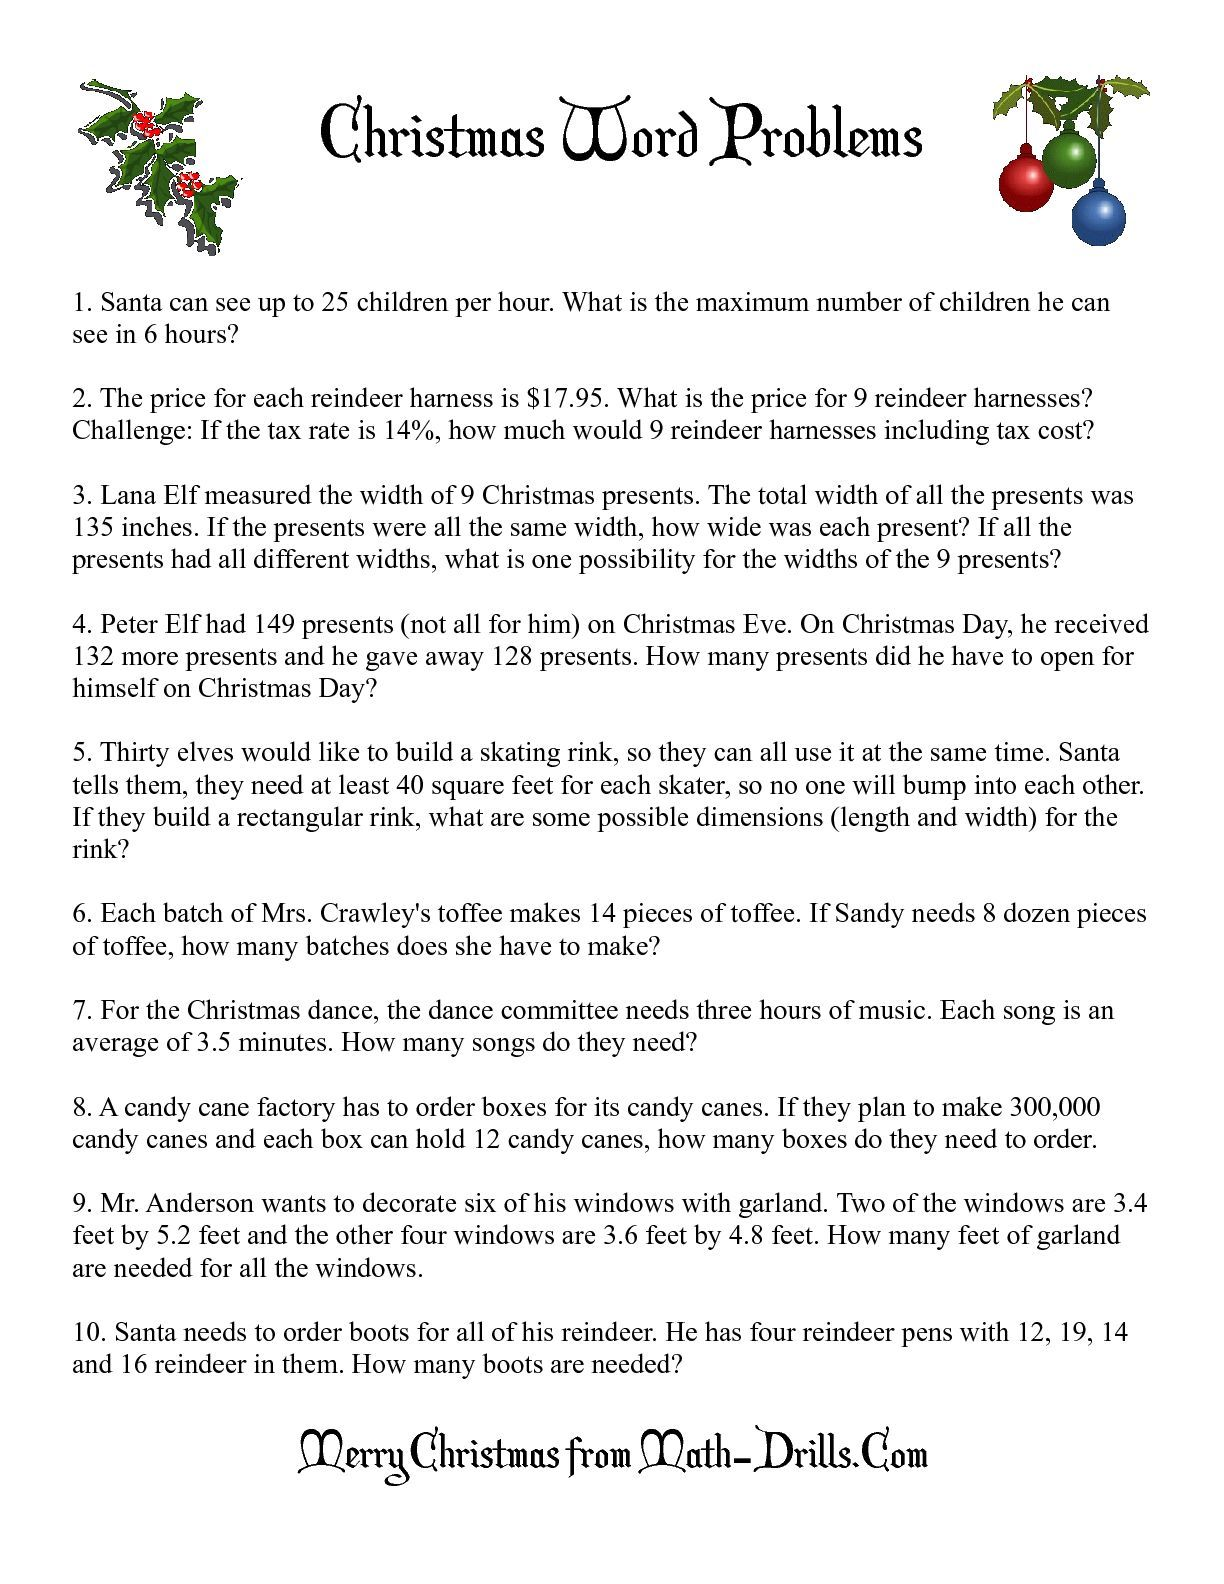 The Word Problems Math Worksheet From The Christmas Math Worksheet Page At Math Drills